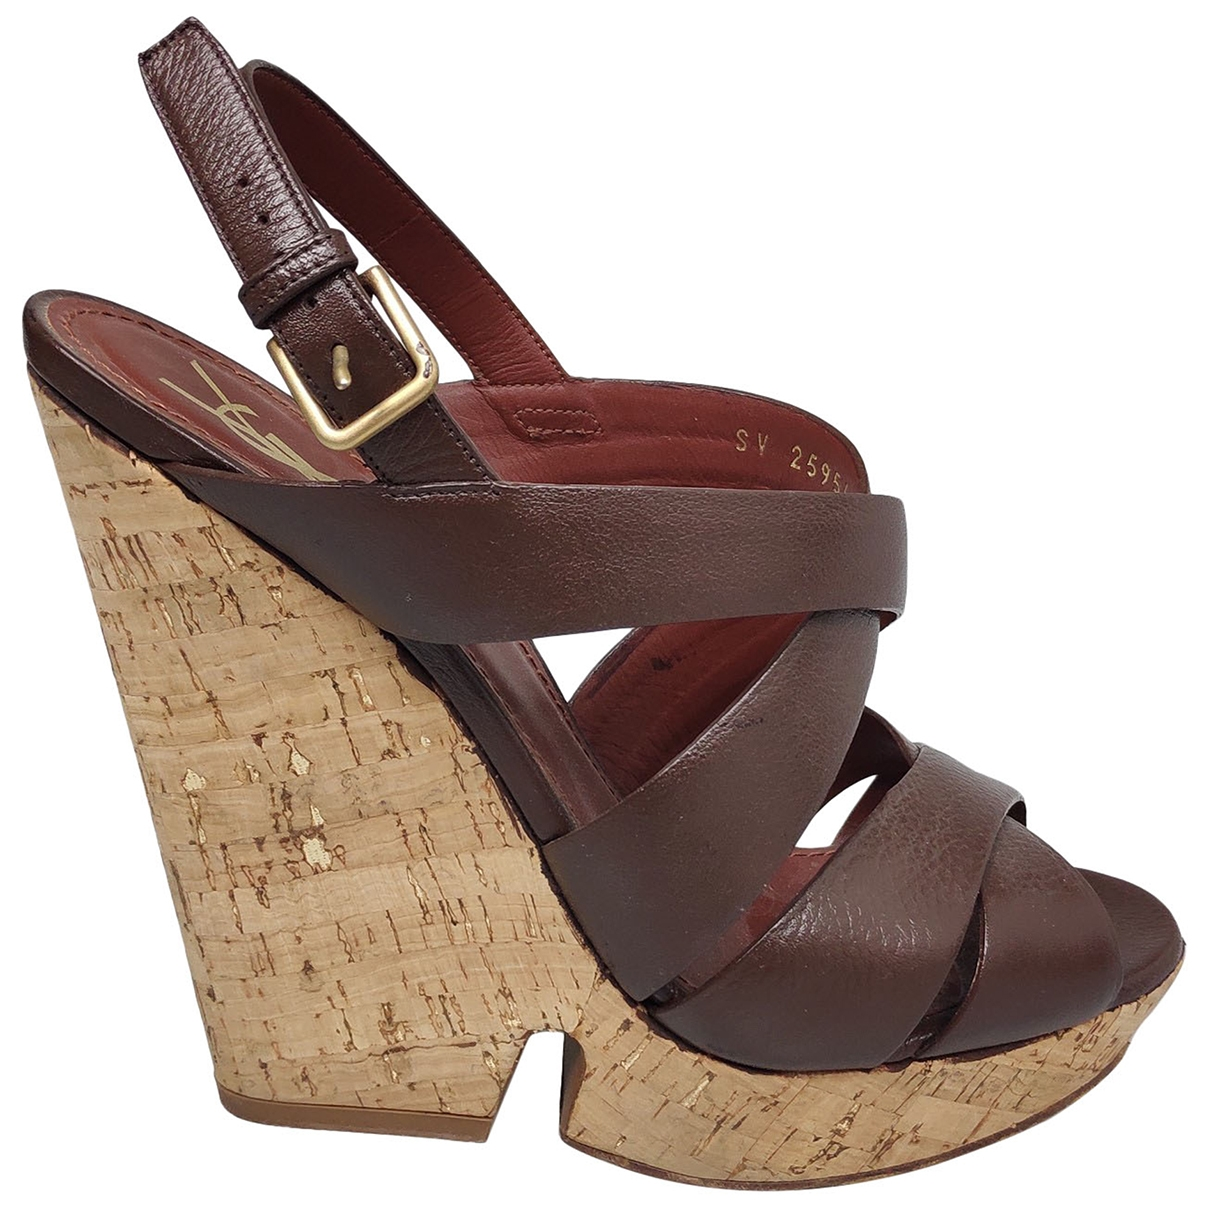 Yves Saint Laurent \N Brown Leather Sandals for Women 40 EU